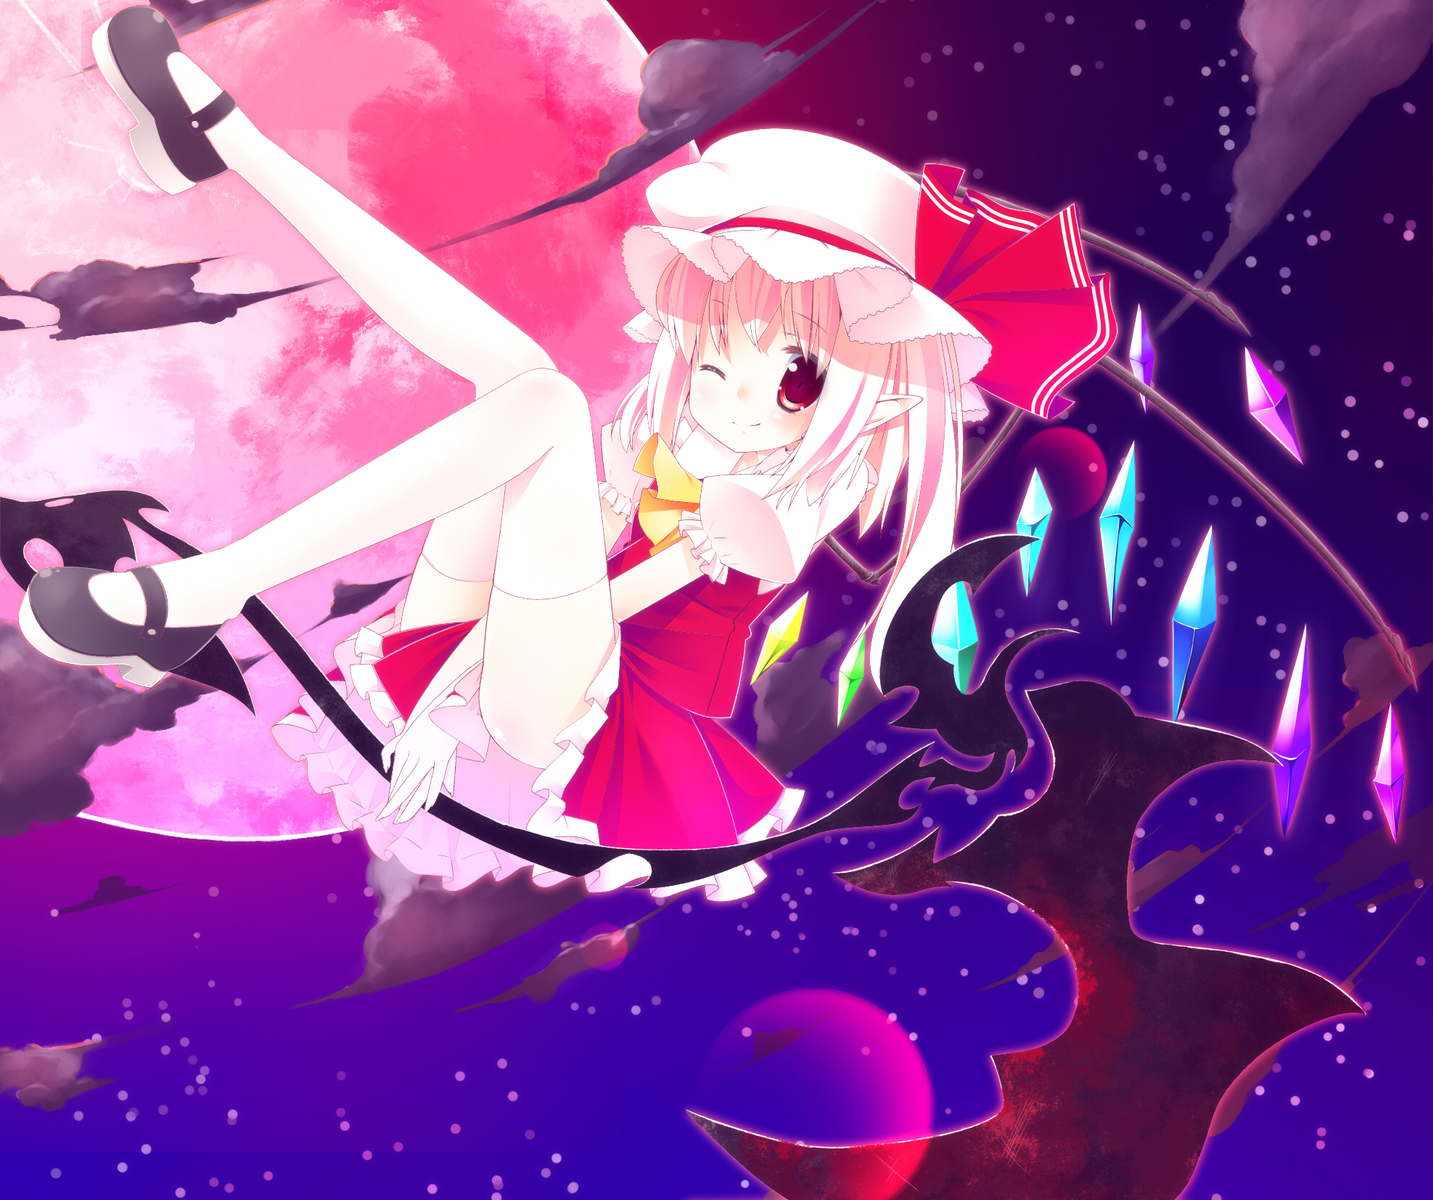 blonde_hair blush bow clouds flandre_scarlet hat moon night red_eyes sefa short_hair sky stars thighhighs touhou vampire wings wink zettai_ryouiki